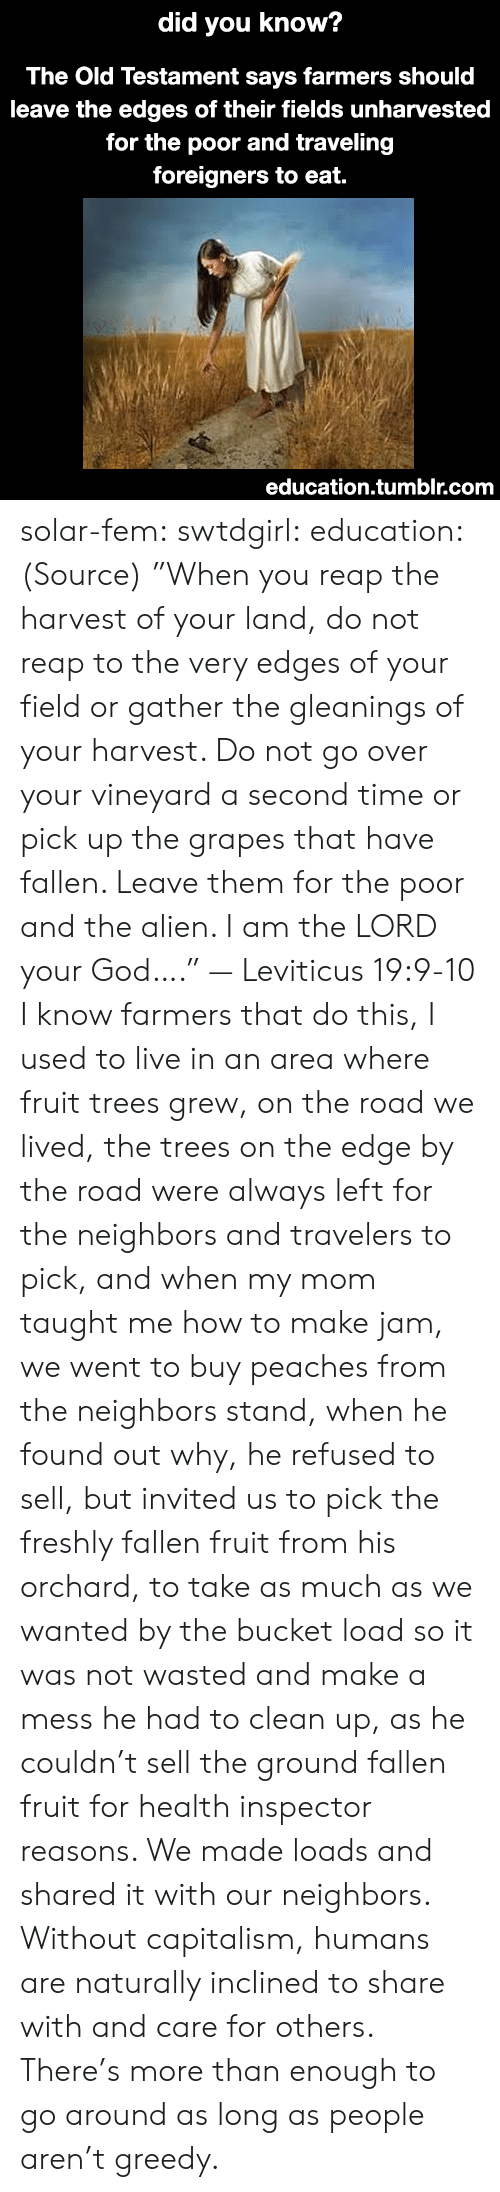 """I Used To: did  you know?  The Old Testament says farmers should  leave the edges of their fields unharvested  for the poor and traveling  foreigners to eat.  education.tumblr.com solar-fem:  swtdgirl:  education:   (Source) """"When you reap the harvest of your land, do not reap to the very edges of your field or gather the gleanings of your harvest. Do not go over your vineyard a second time or pick up the grapes that have fallen. Leave them for the poor and the alien. I am the LORD your God…."""" — Leviticus 19:9-10     I know farmers that do this, I used to live in an area where fruit trees grew, on the road we lived, the trees on the edge by the road were always left for the neighbors and travelers to pick, and when my mom taught me how to make jam, we went to buy peaches from the neighbors stand, when he found out why, he refused to sell, but invited us to pick the freshly fallen fruit from his orchard, to take as much as we wanted by the bucket load so it was not wasted and make a mess he had to clean up, as he couldn't sell the ground fallen fruit for health inspector reasons. We made loads and shared it with our neighbors.  Without capitalism, humans are naturally inclined to share with and care for others. There's more than enough to go around as long as people aren't greedy."""